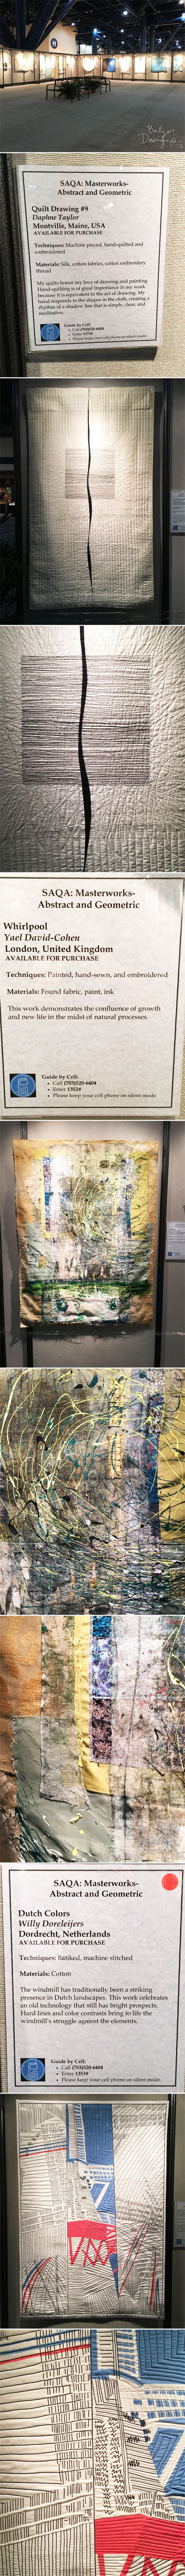 From the Balzer Designs Blog: Quilt Festival 2017: Part Six